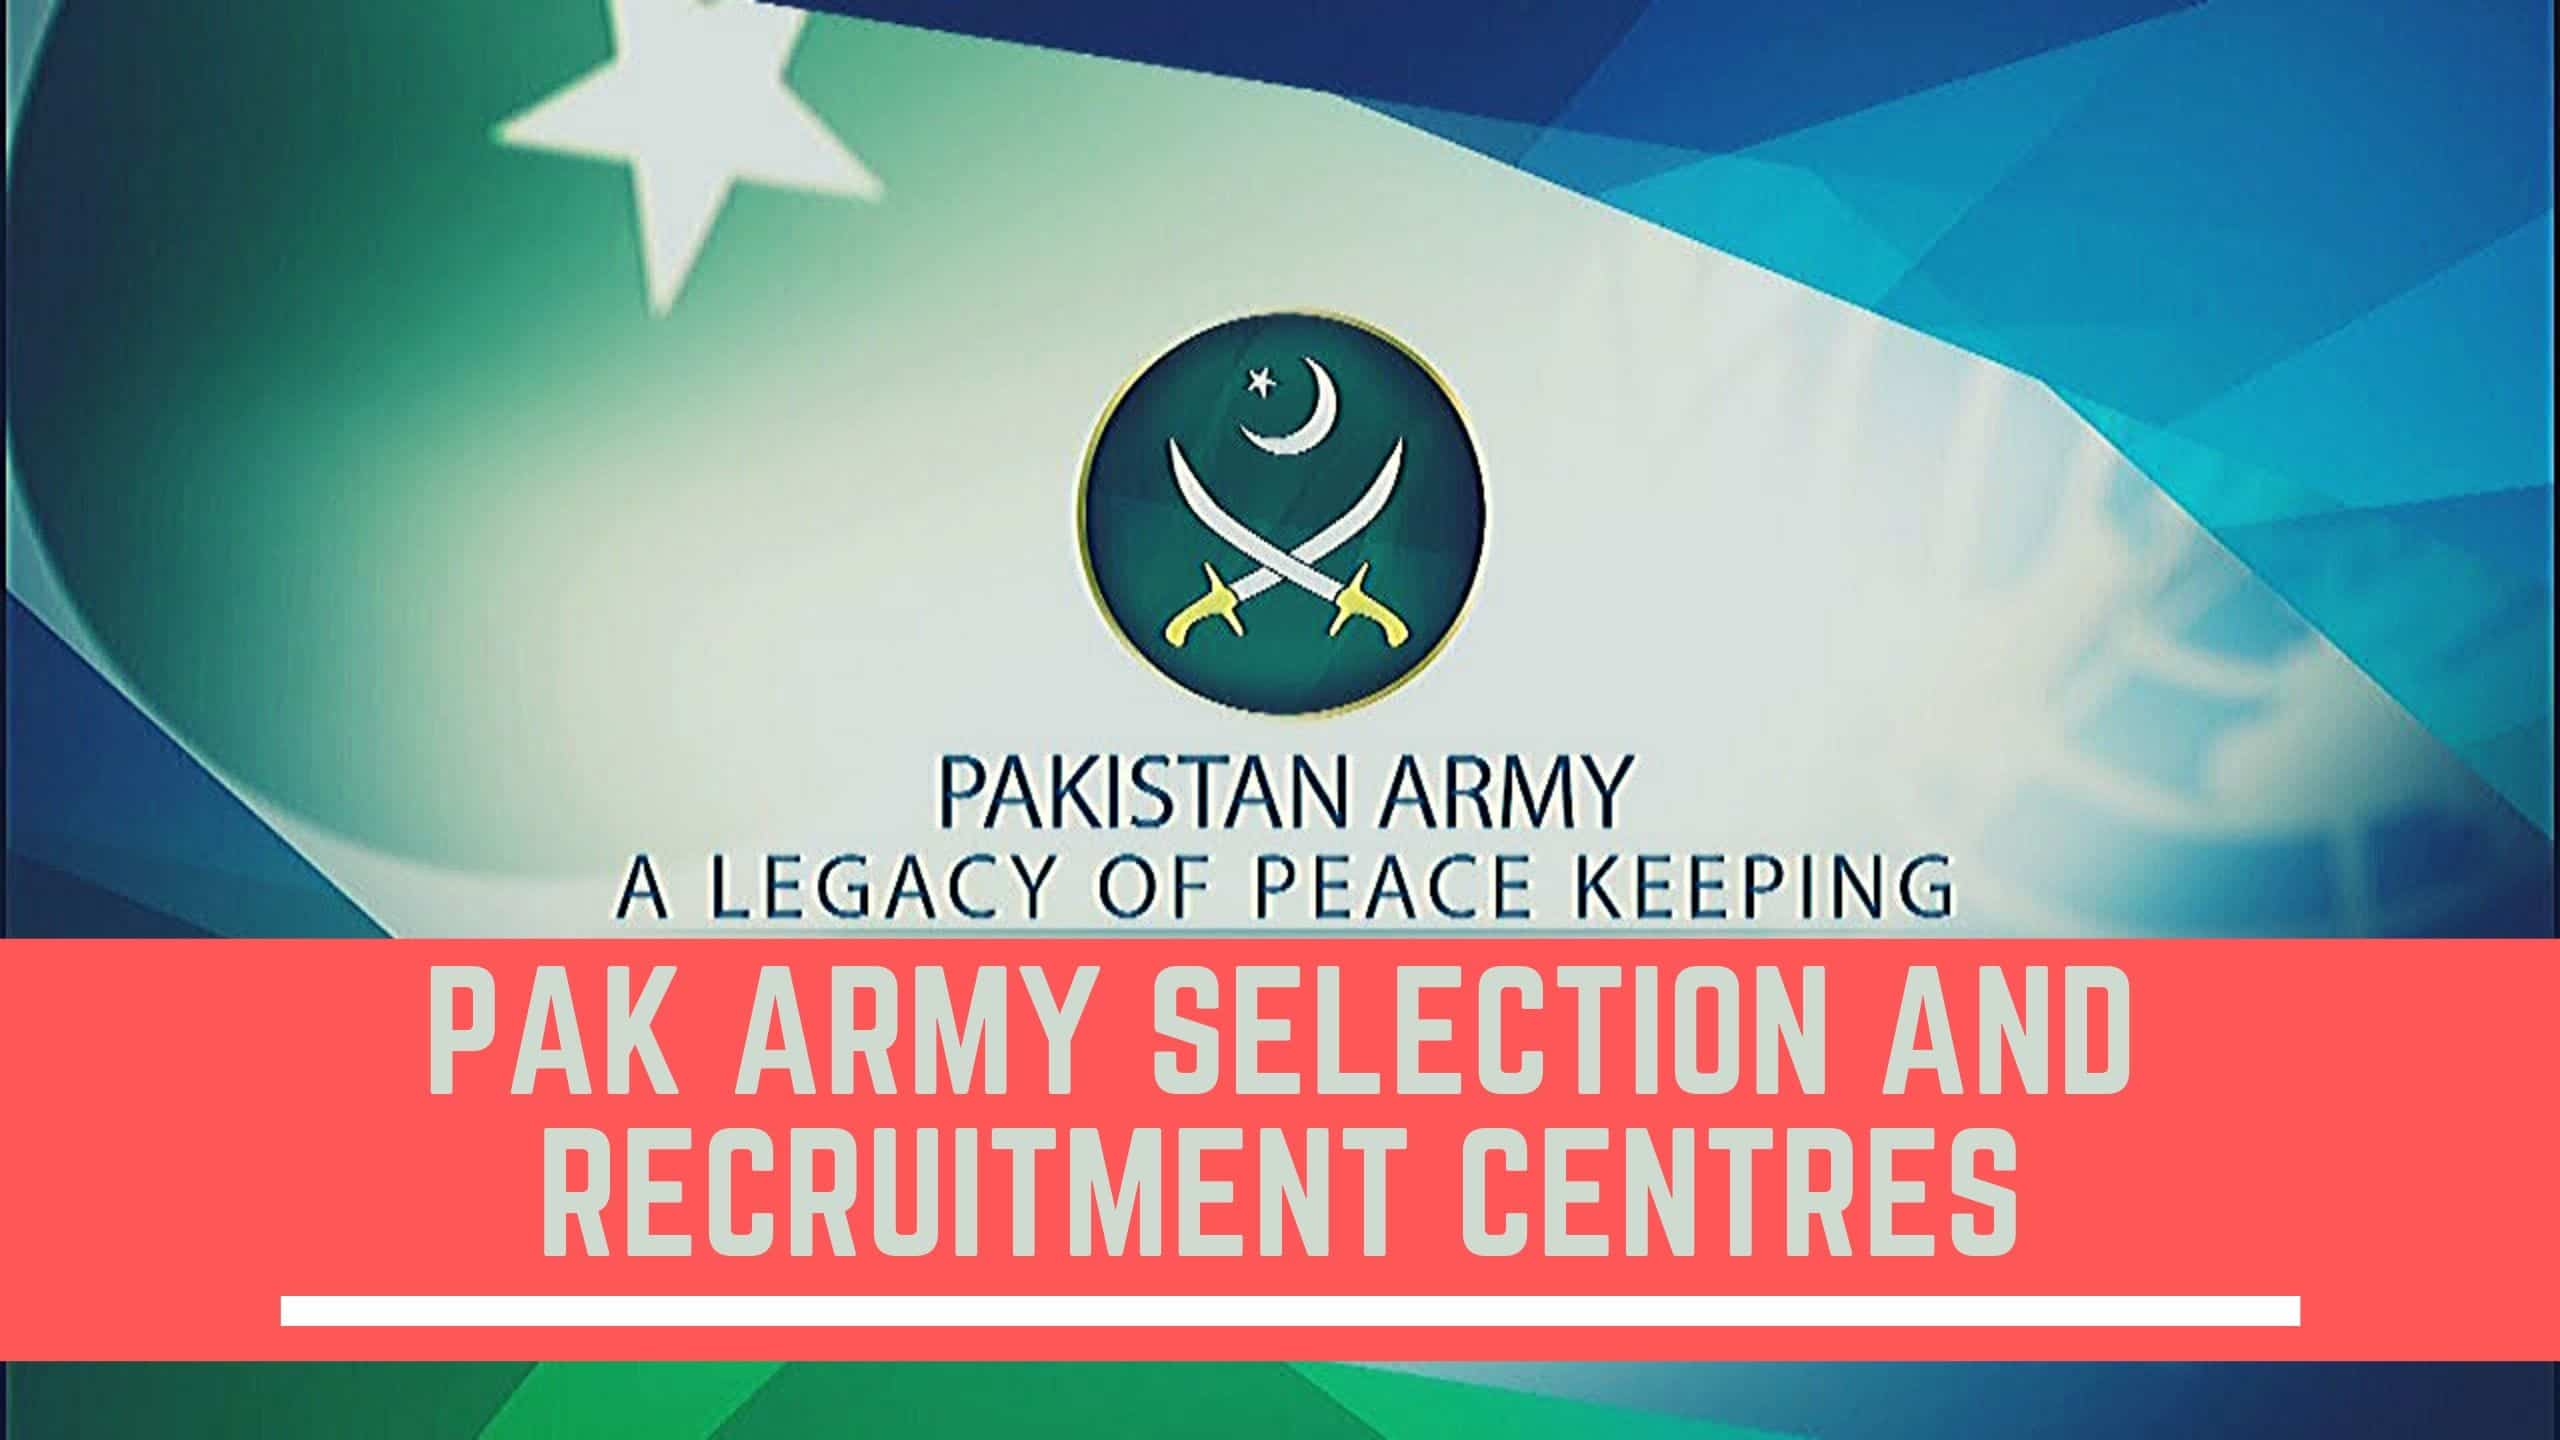 PAK Army Selection & Recruitment Centres